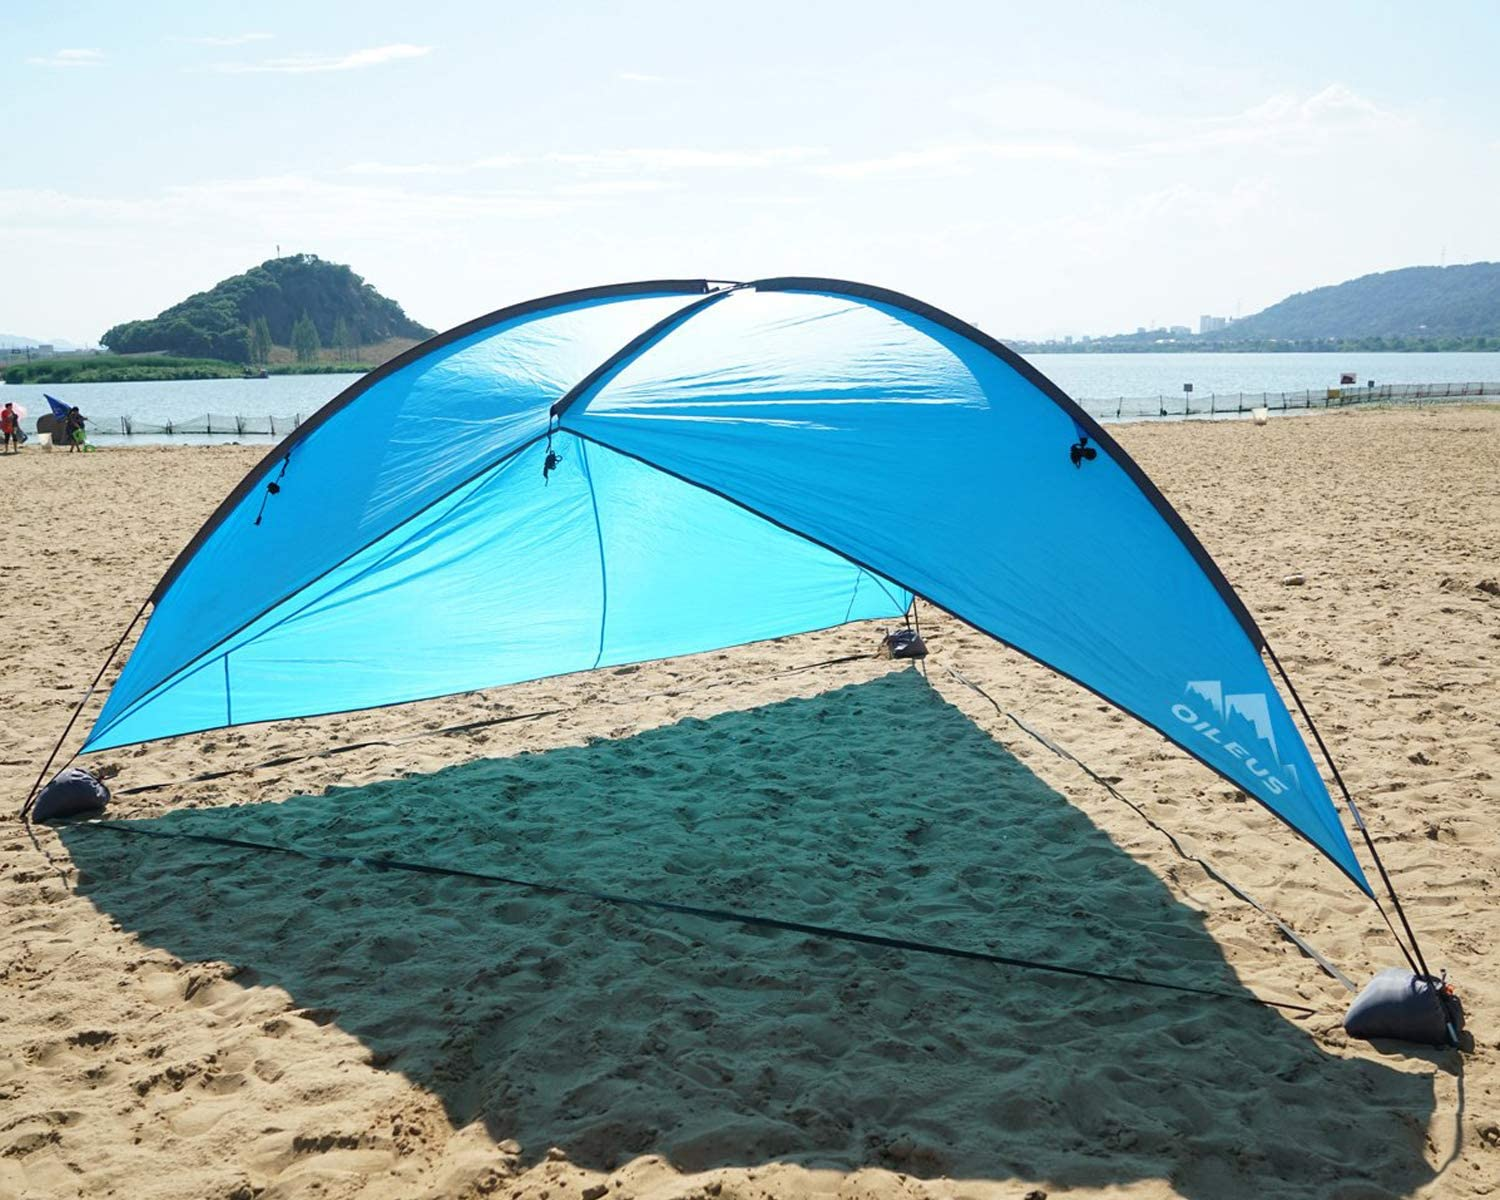 Oileus Super Big Canopy Tent with Sand Bags Easy up Beach